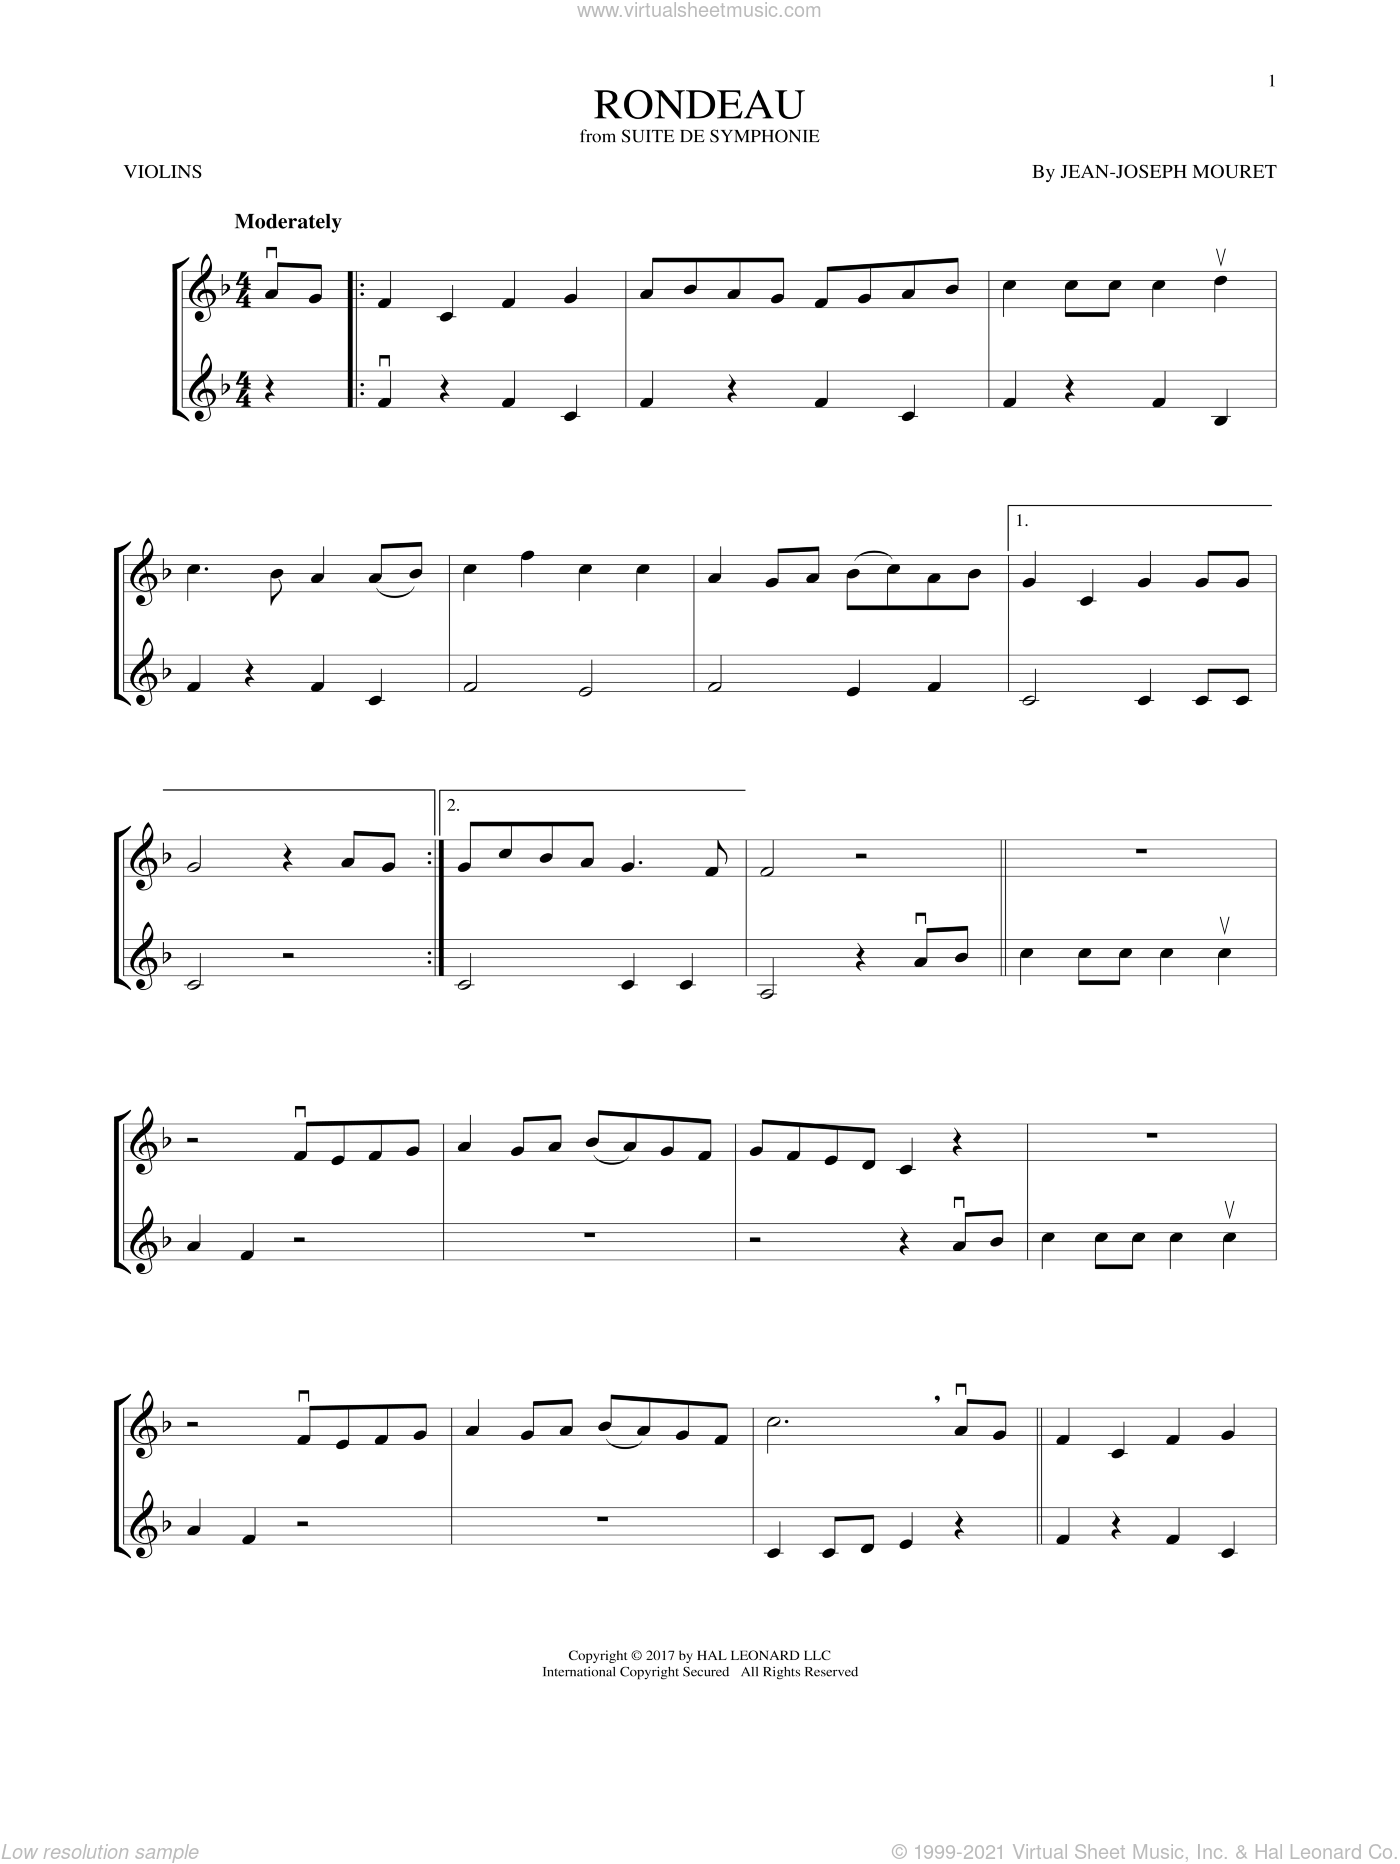 Fanfare Rondeau sheet music for two violins (duets, violin duets) by Jean-Joseph Mouret, classical score, intermediate skill level